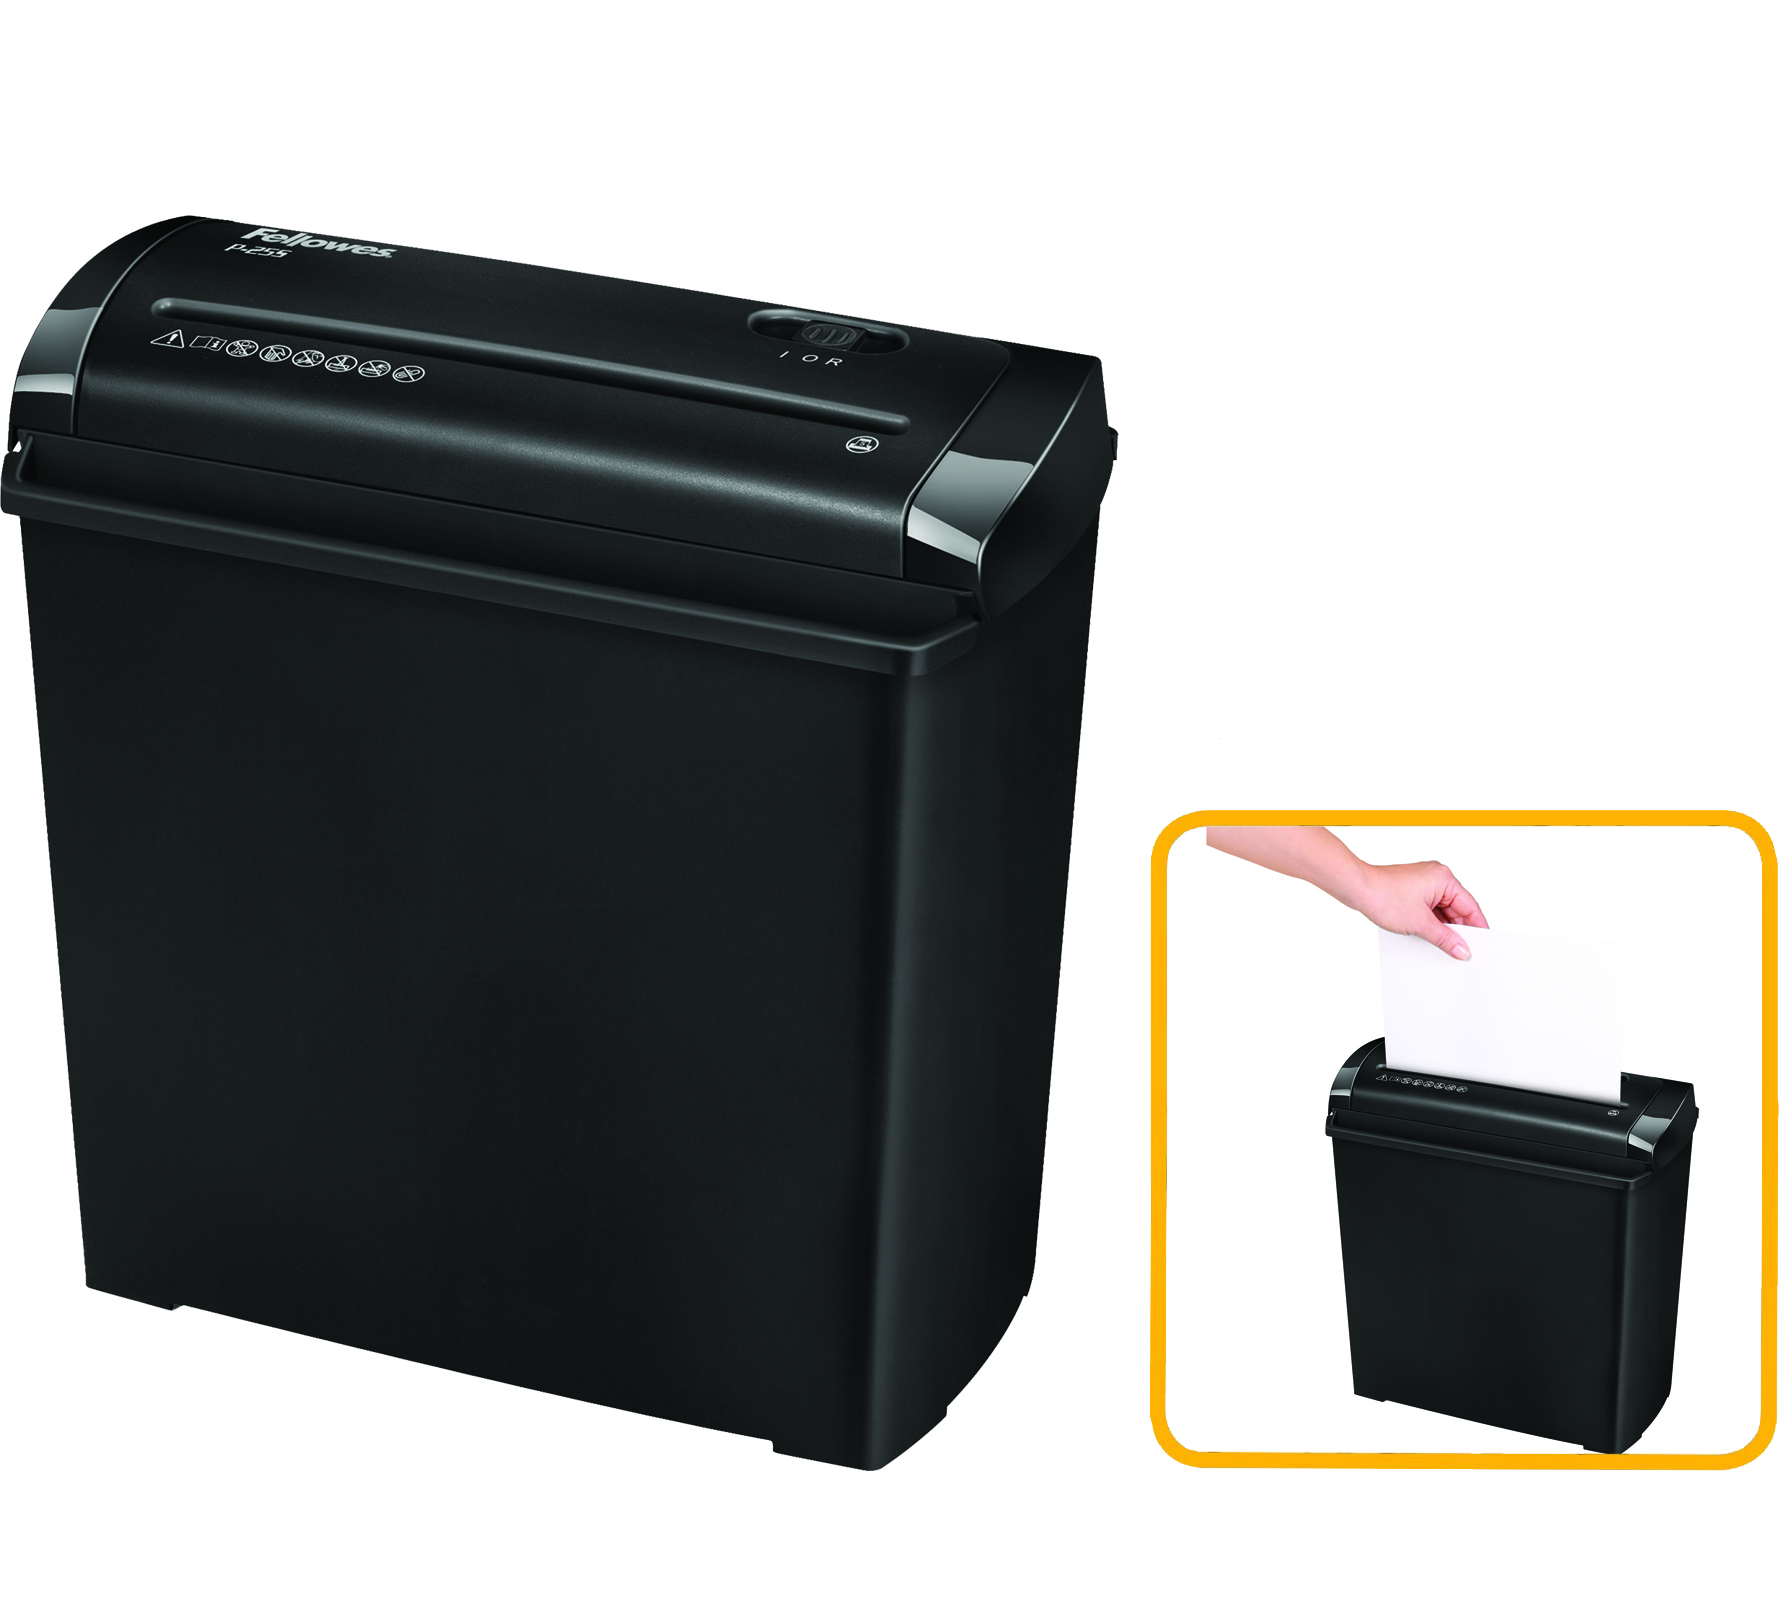 Destruidora de Papel Fellowes P-25S, 5fls, 11L